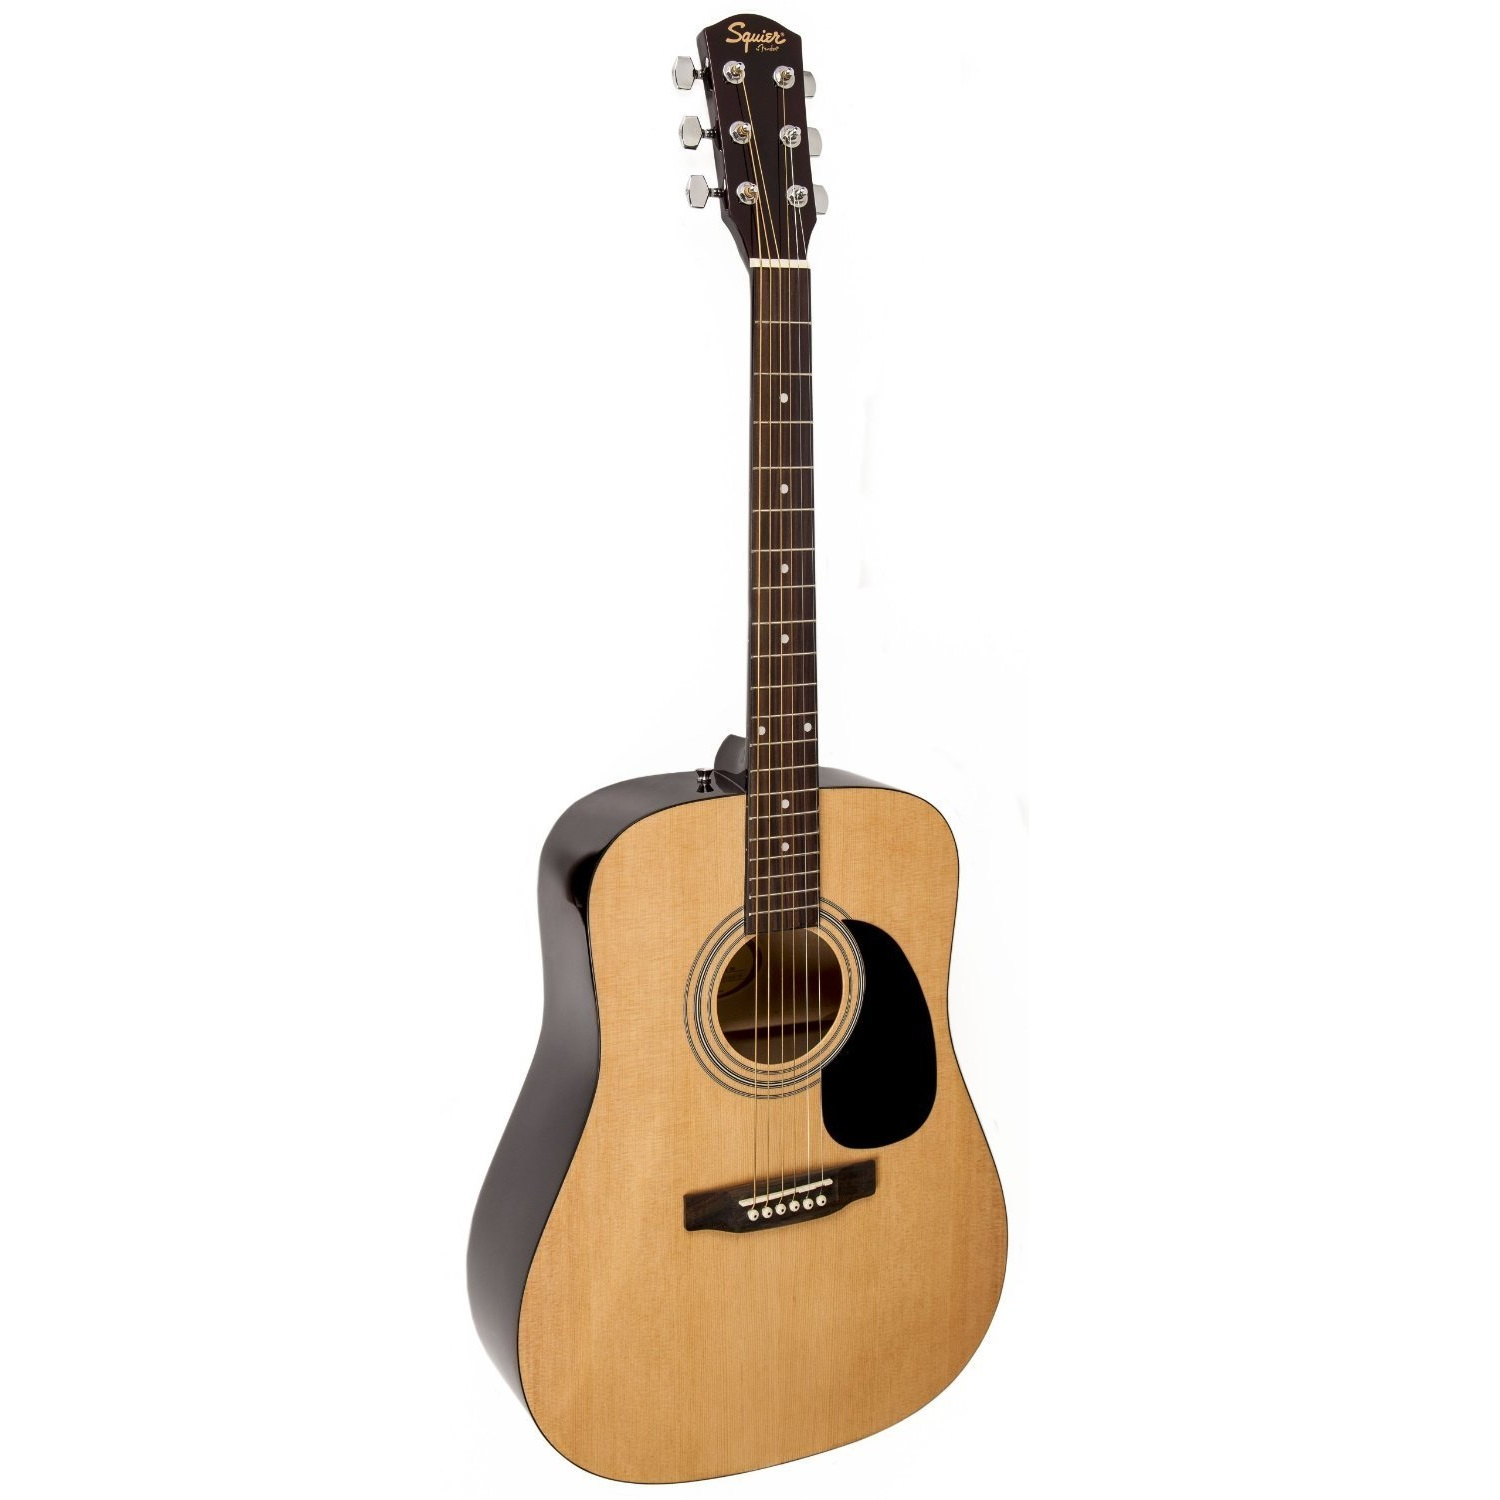 Fender Squier SA-105 Acoustic Guitar Bundle